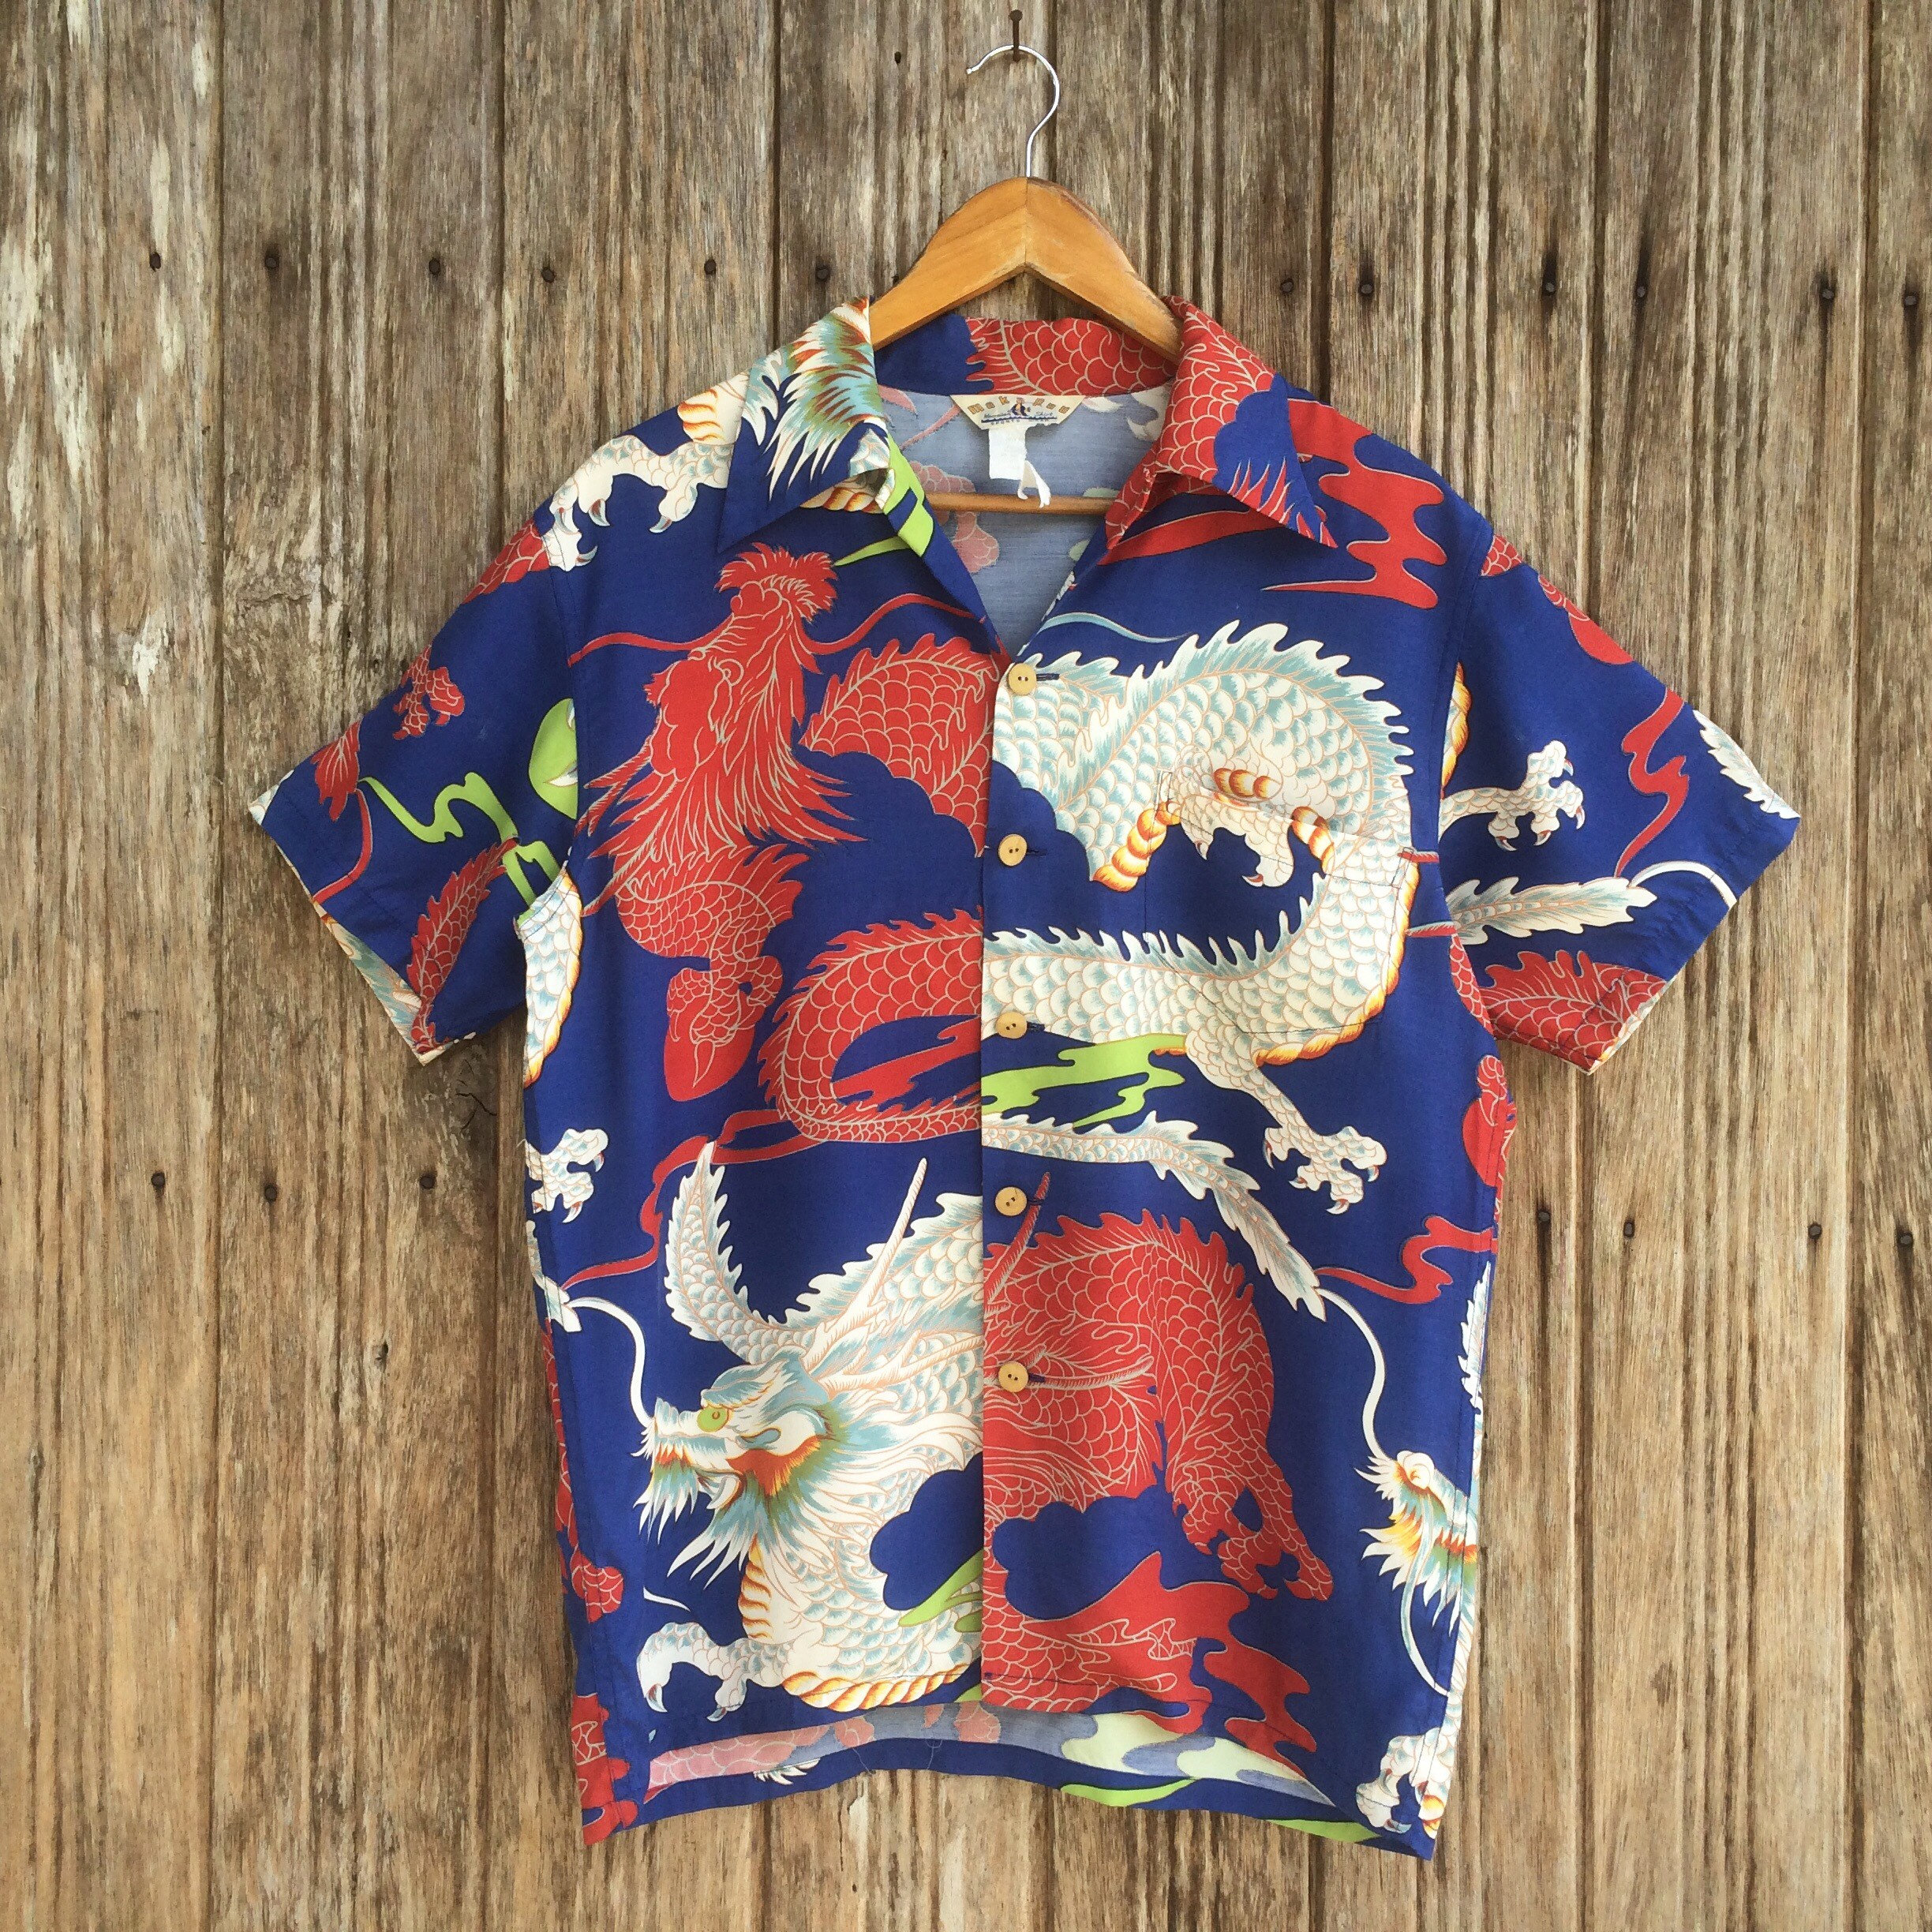 Mens 90s Vintage Hawaiian Shirt with Dragon Motif from Vintage Gallagers